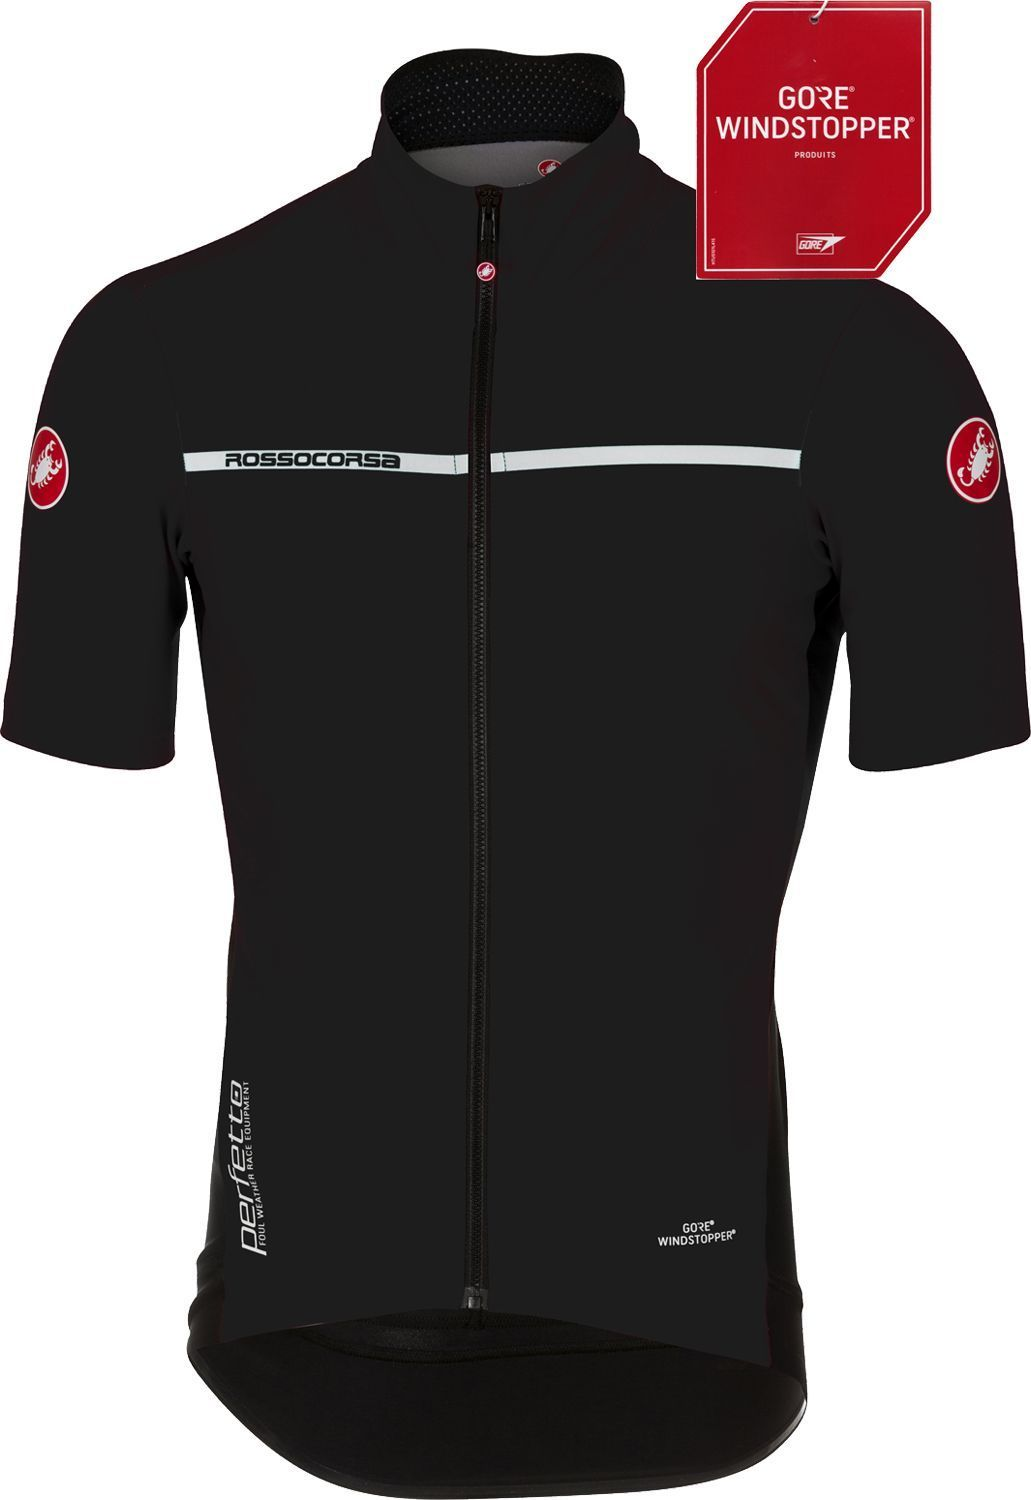 Castelli PERFETTO LIGHT 2 - wind waterproof short sleeve cycling jersey  black. Previous 1dbb5207c